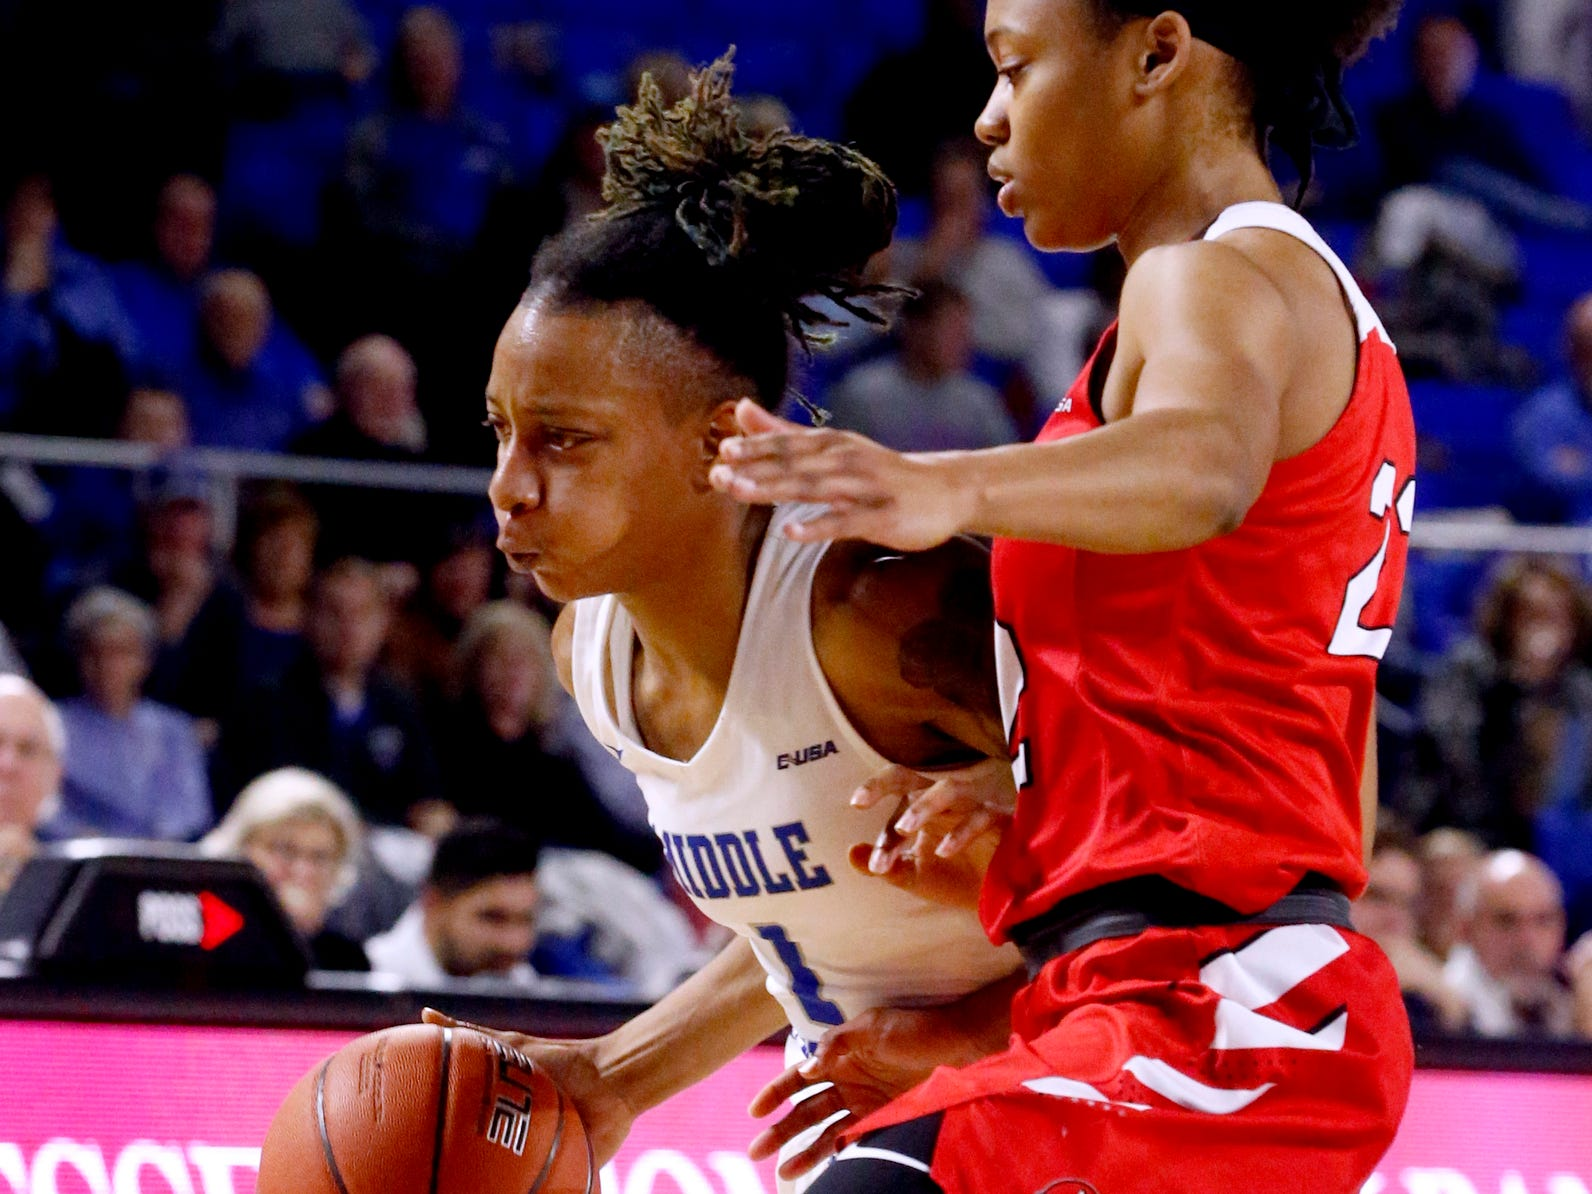 MTSU's guard A'Queen Hayes (1) moves the ball around the court as Western's guard Sherry Porter (22) guards her on Thursday, Feb. 14, 2019.